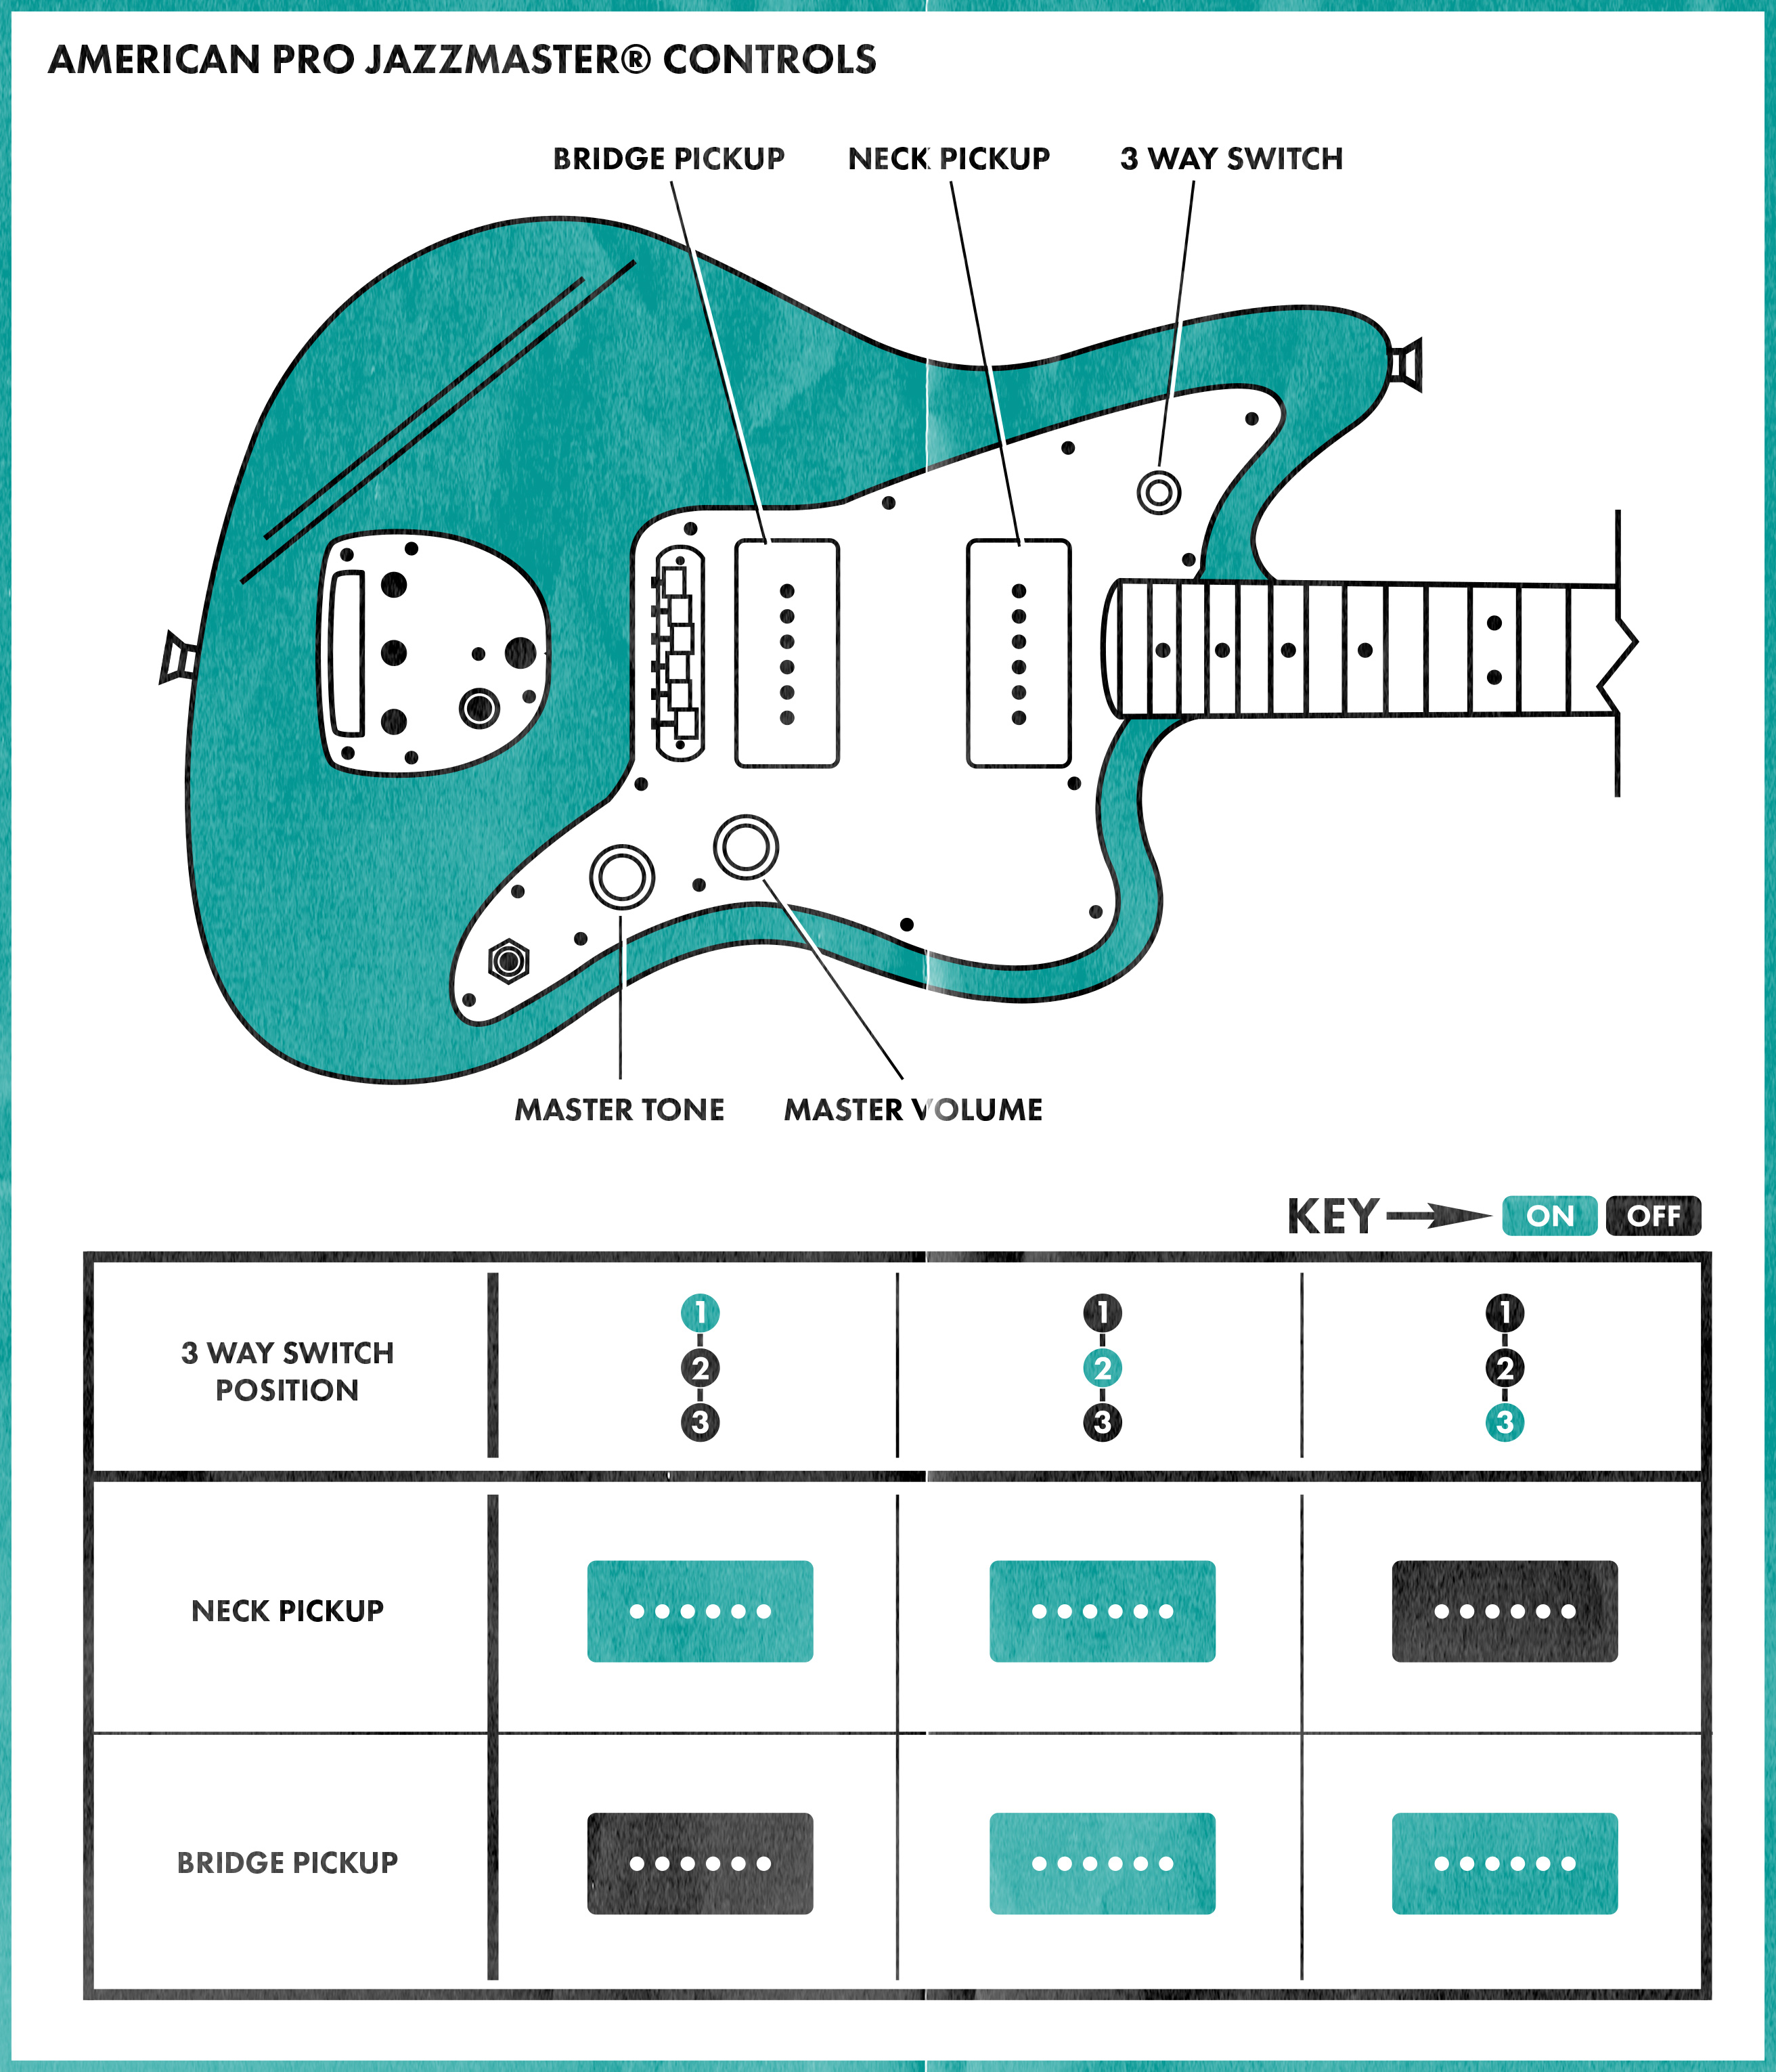 16349 jazzmaster diagram1 v2 jazzmaster controls explained fender jazzmaster Telecaster 3-Way Switch Wiring Diagram at crackthecode.co